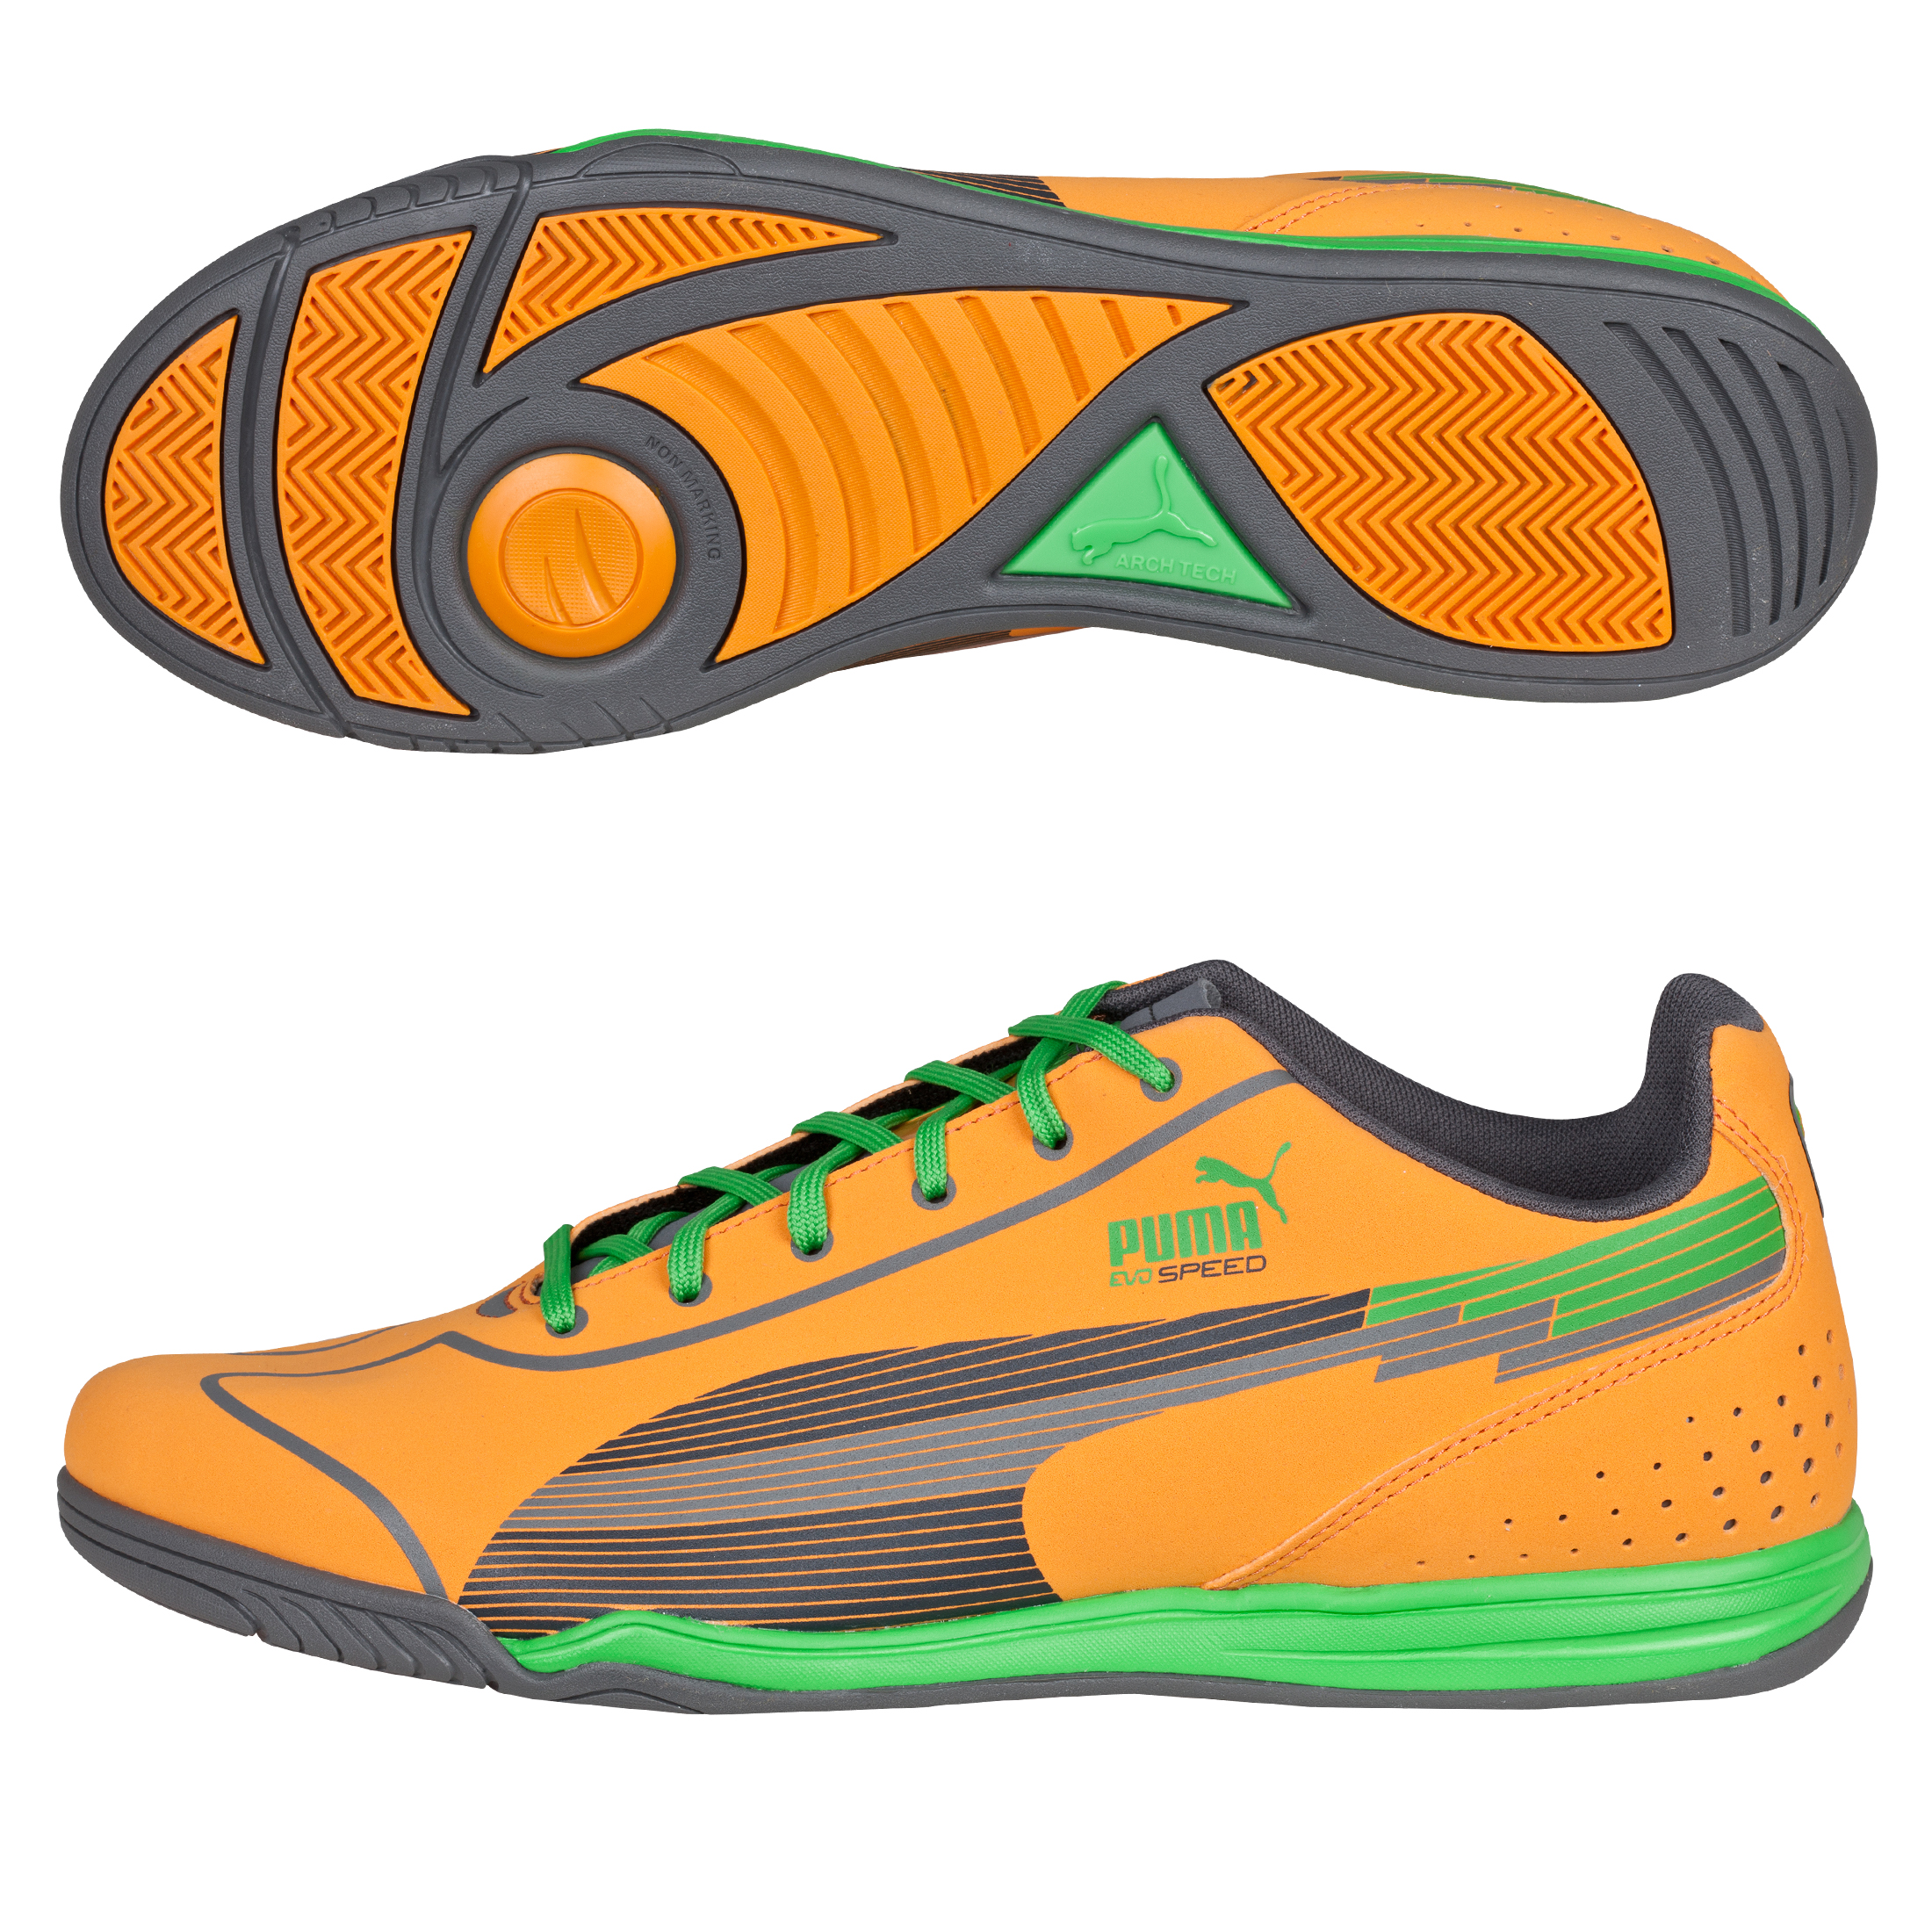 Evospeed Star Trainer Flame Orange/Team Charcoal/Classic Green